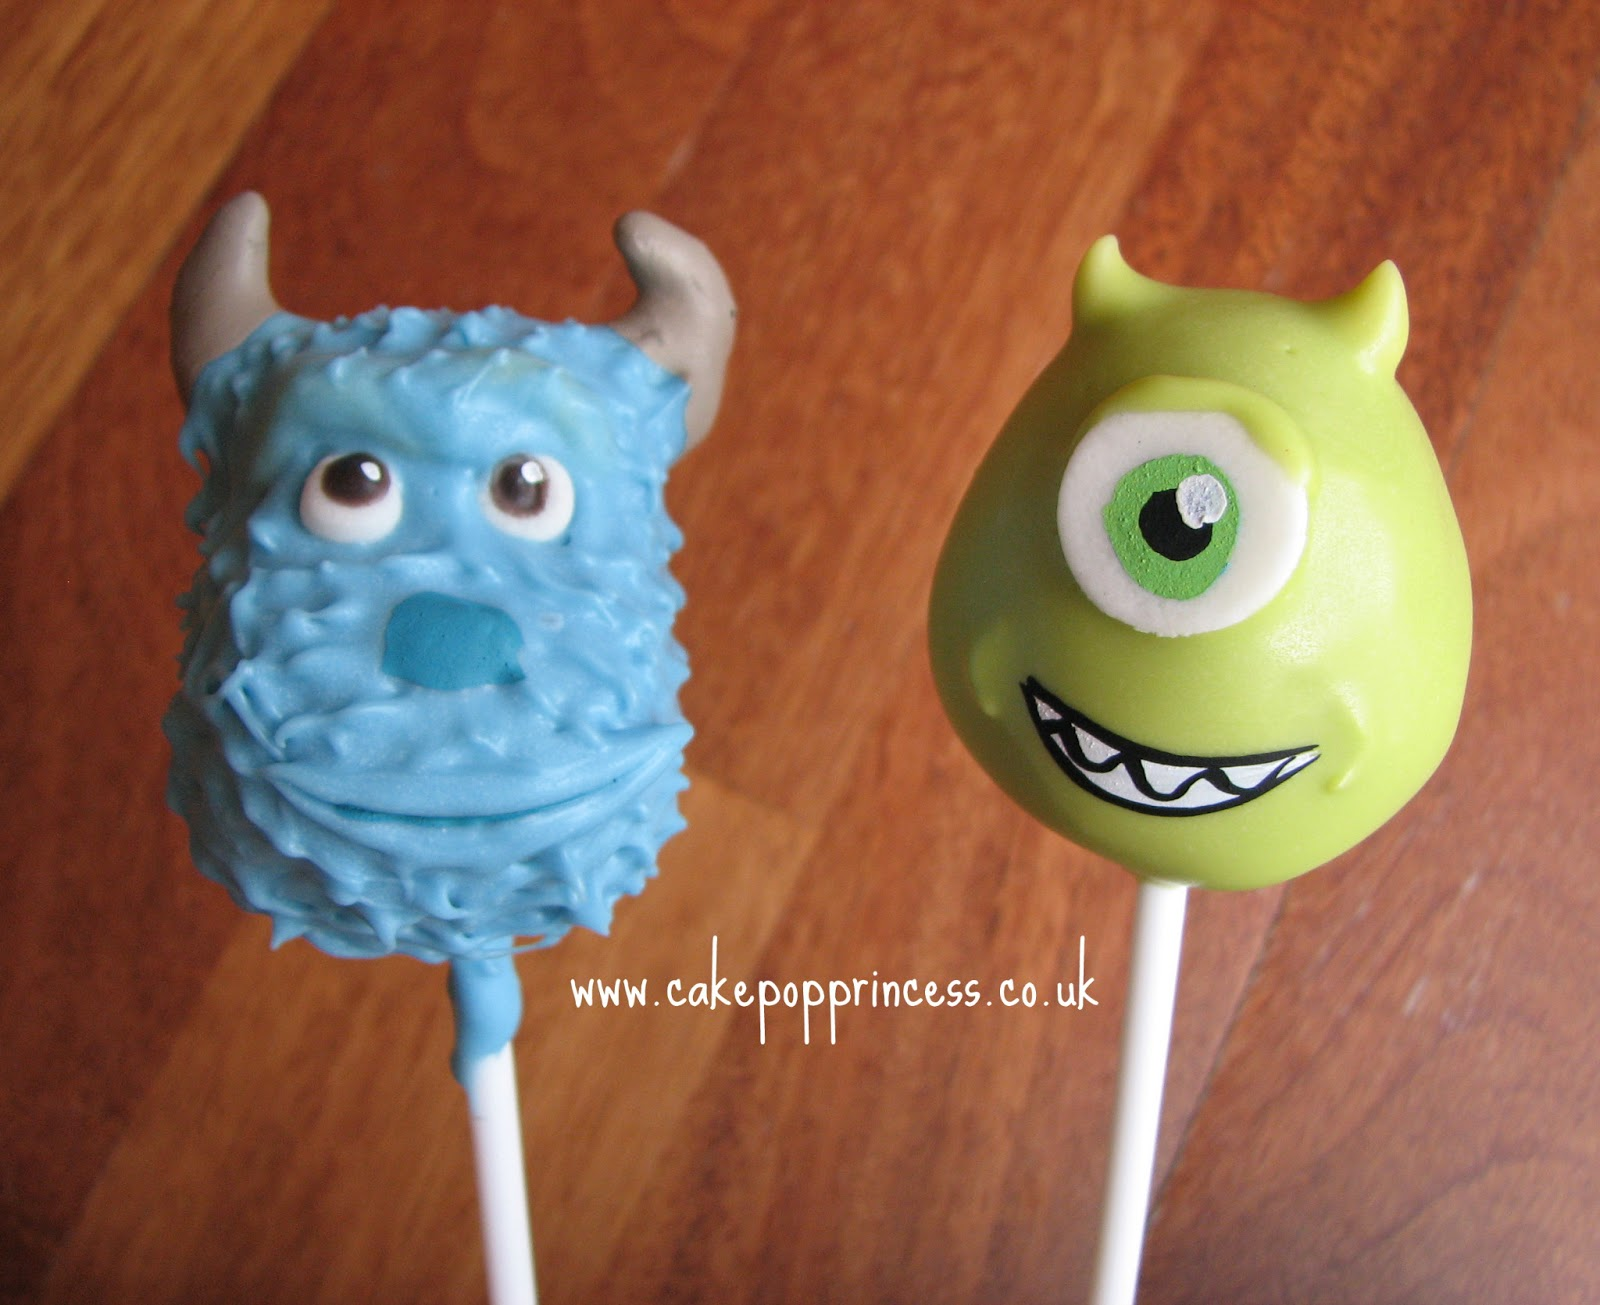 Cake Pop Princess Very late makes to share post 1